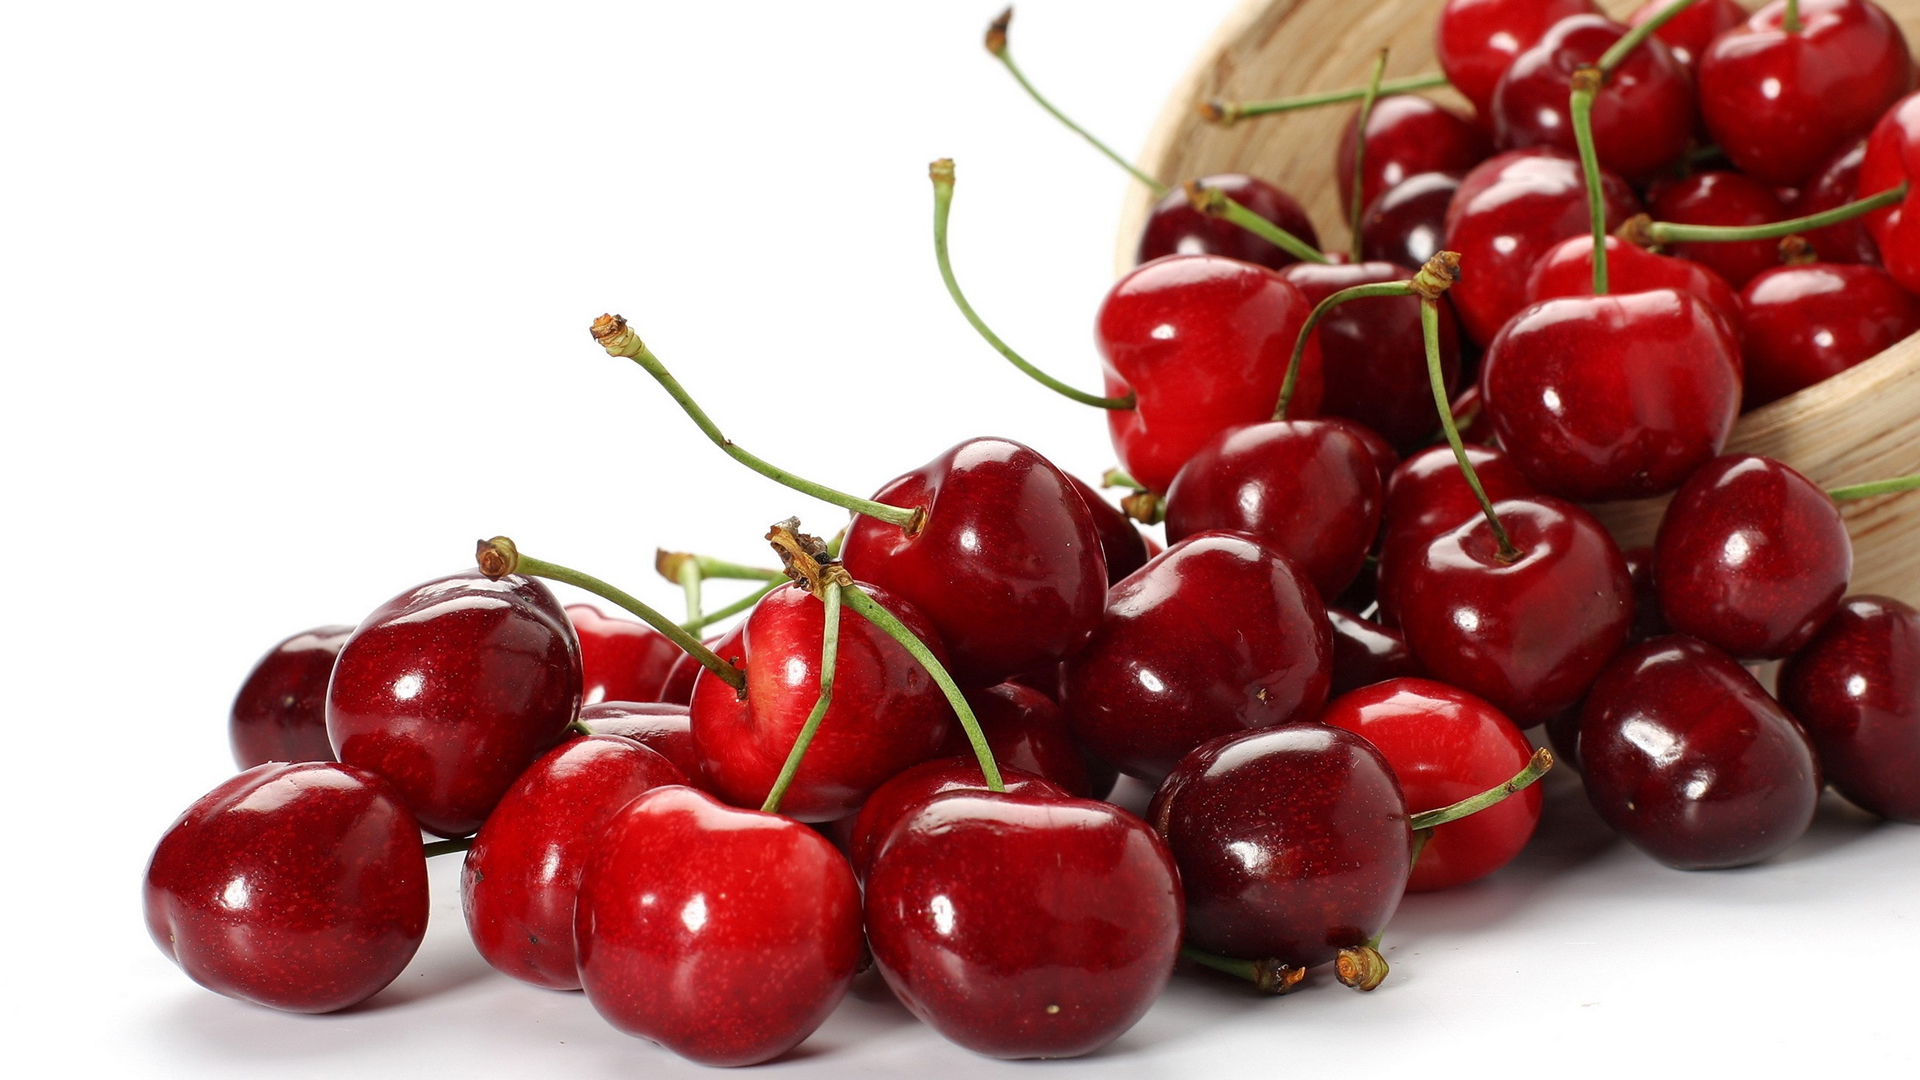 Red Cherry in a Basket